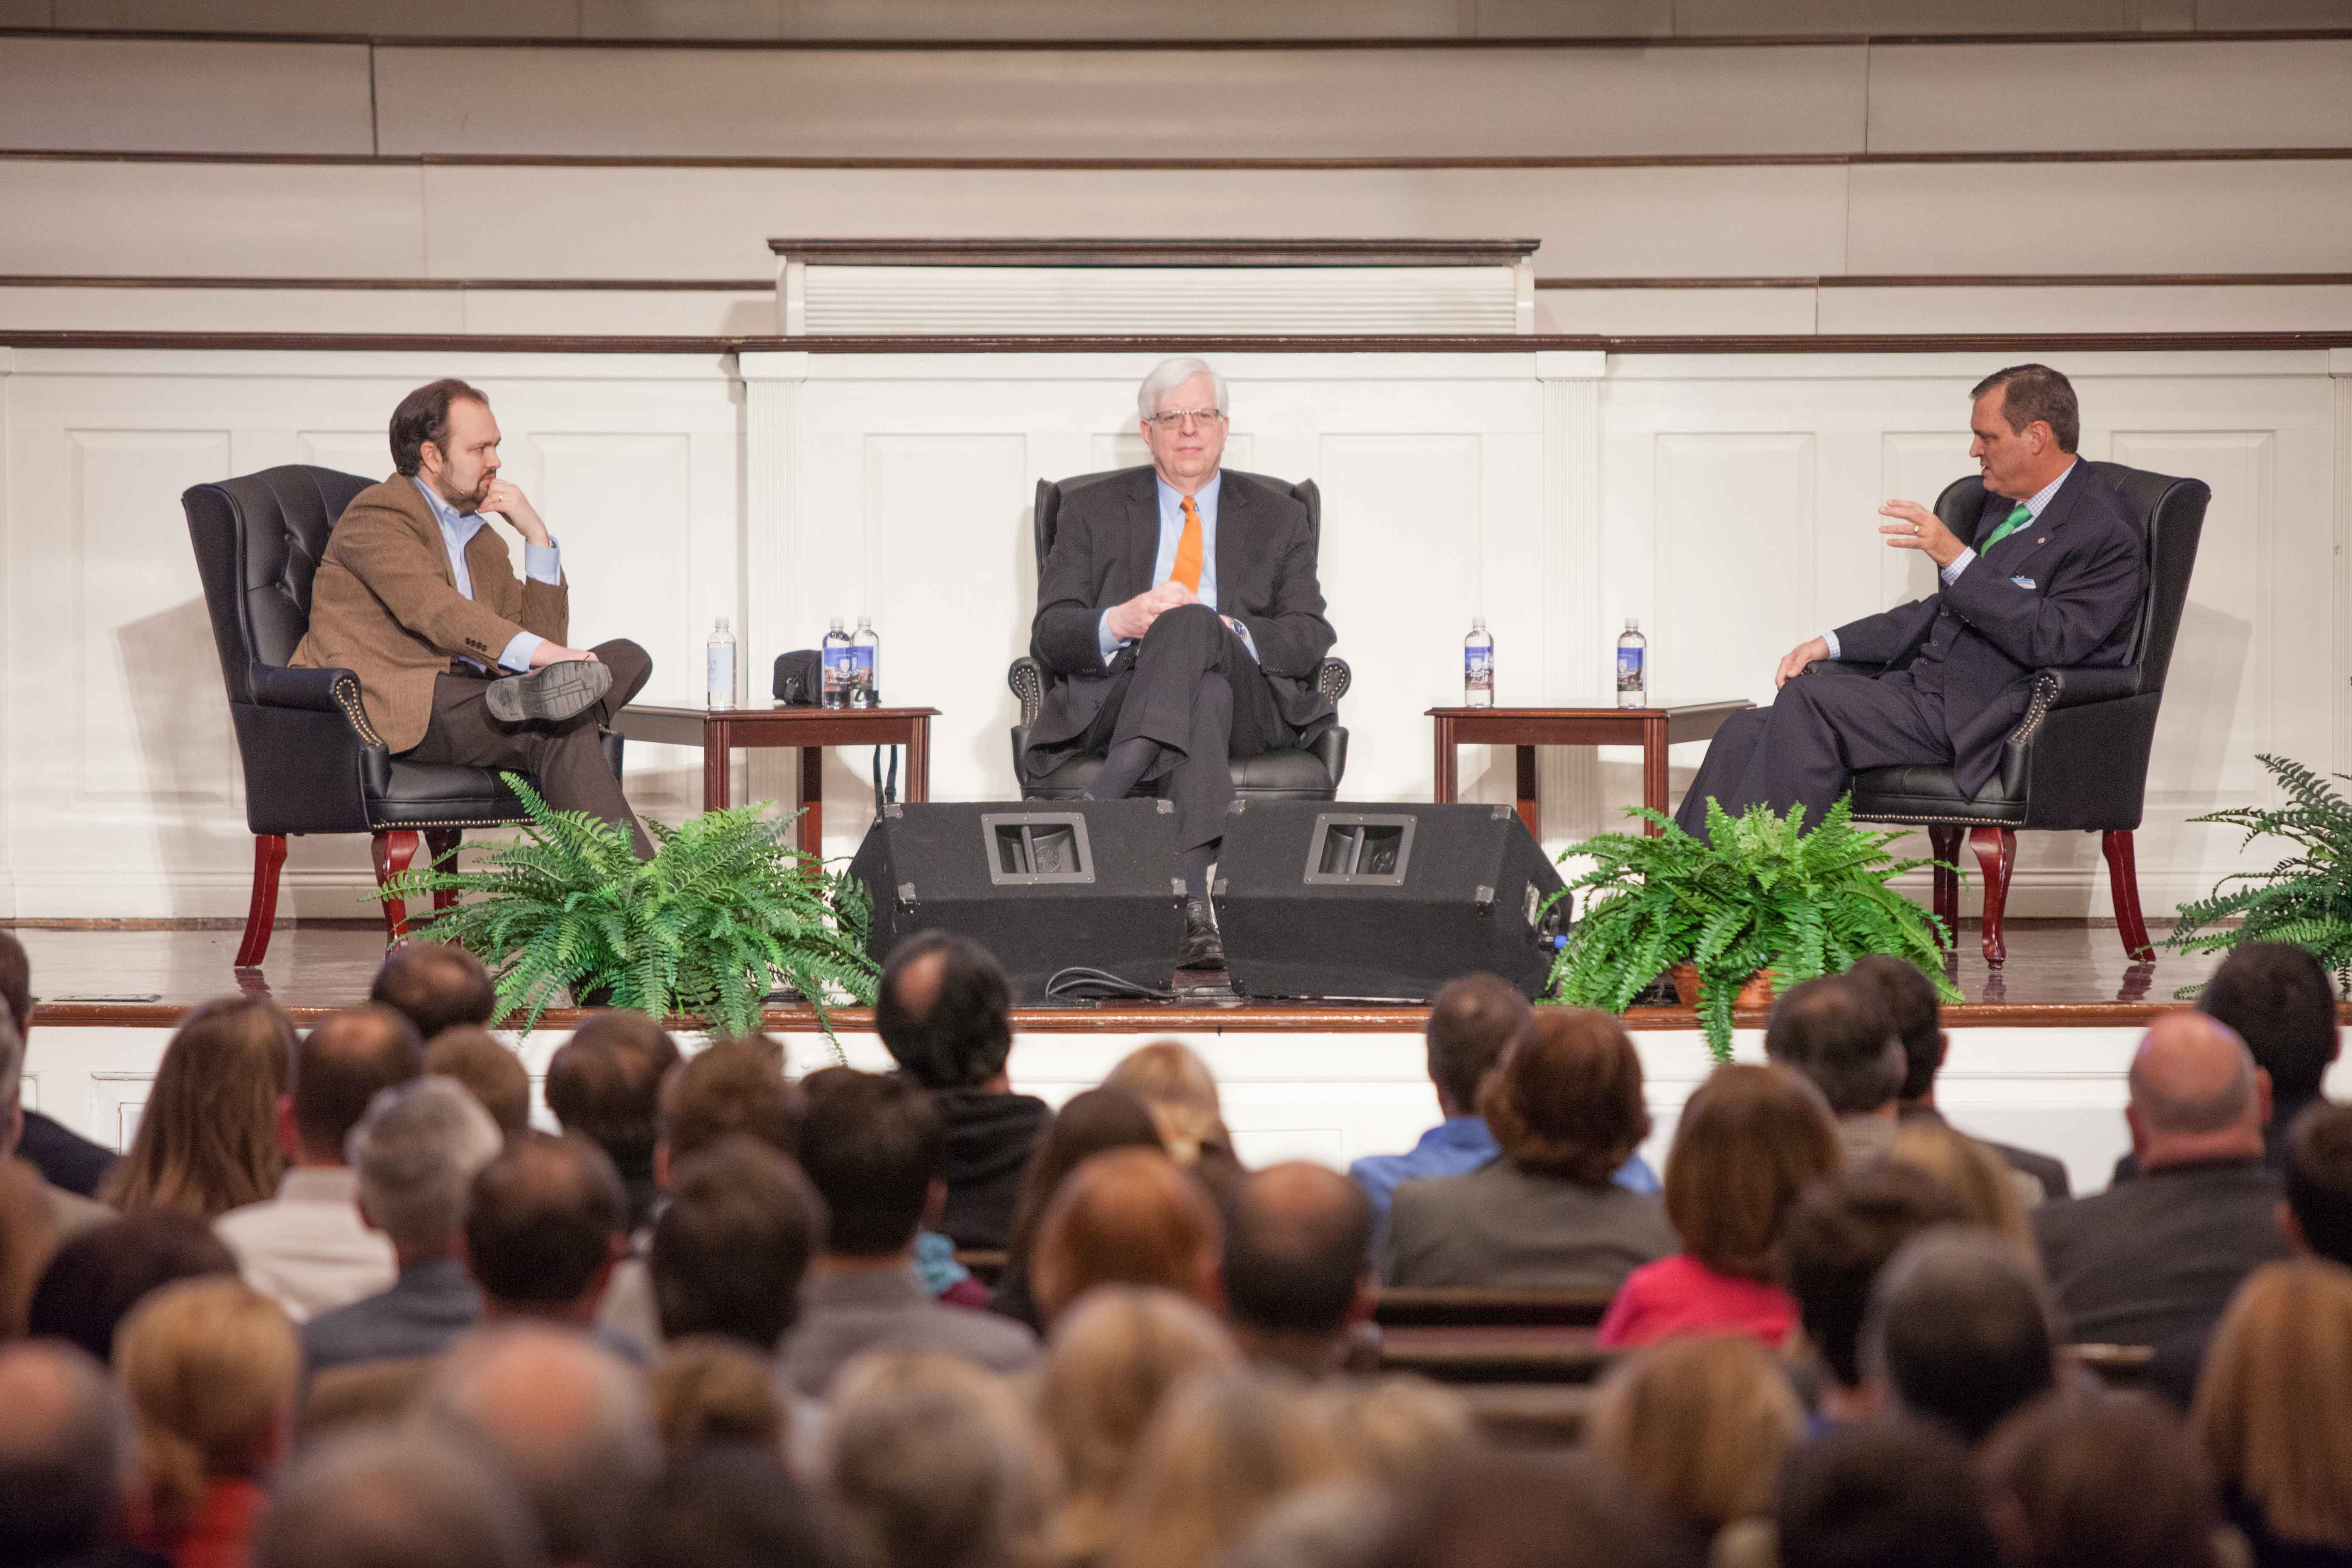 In discussion of 'faith and freedom,' Mohler declares 'cultural